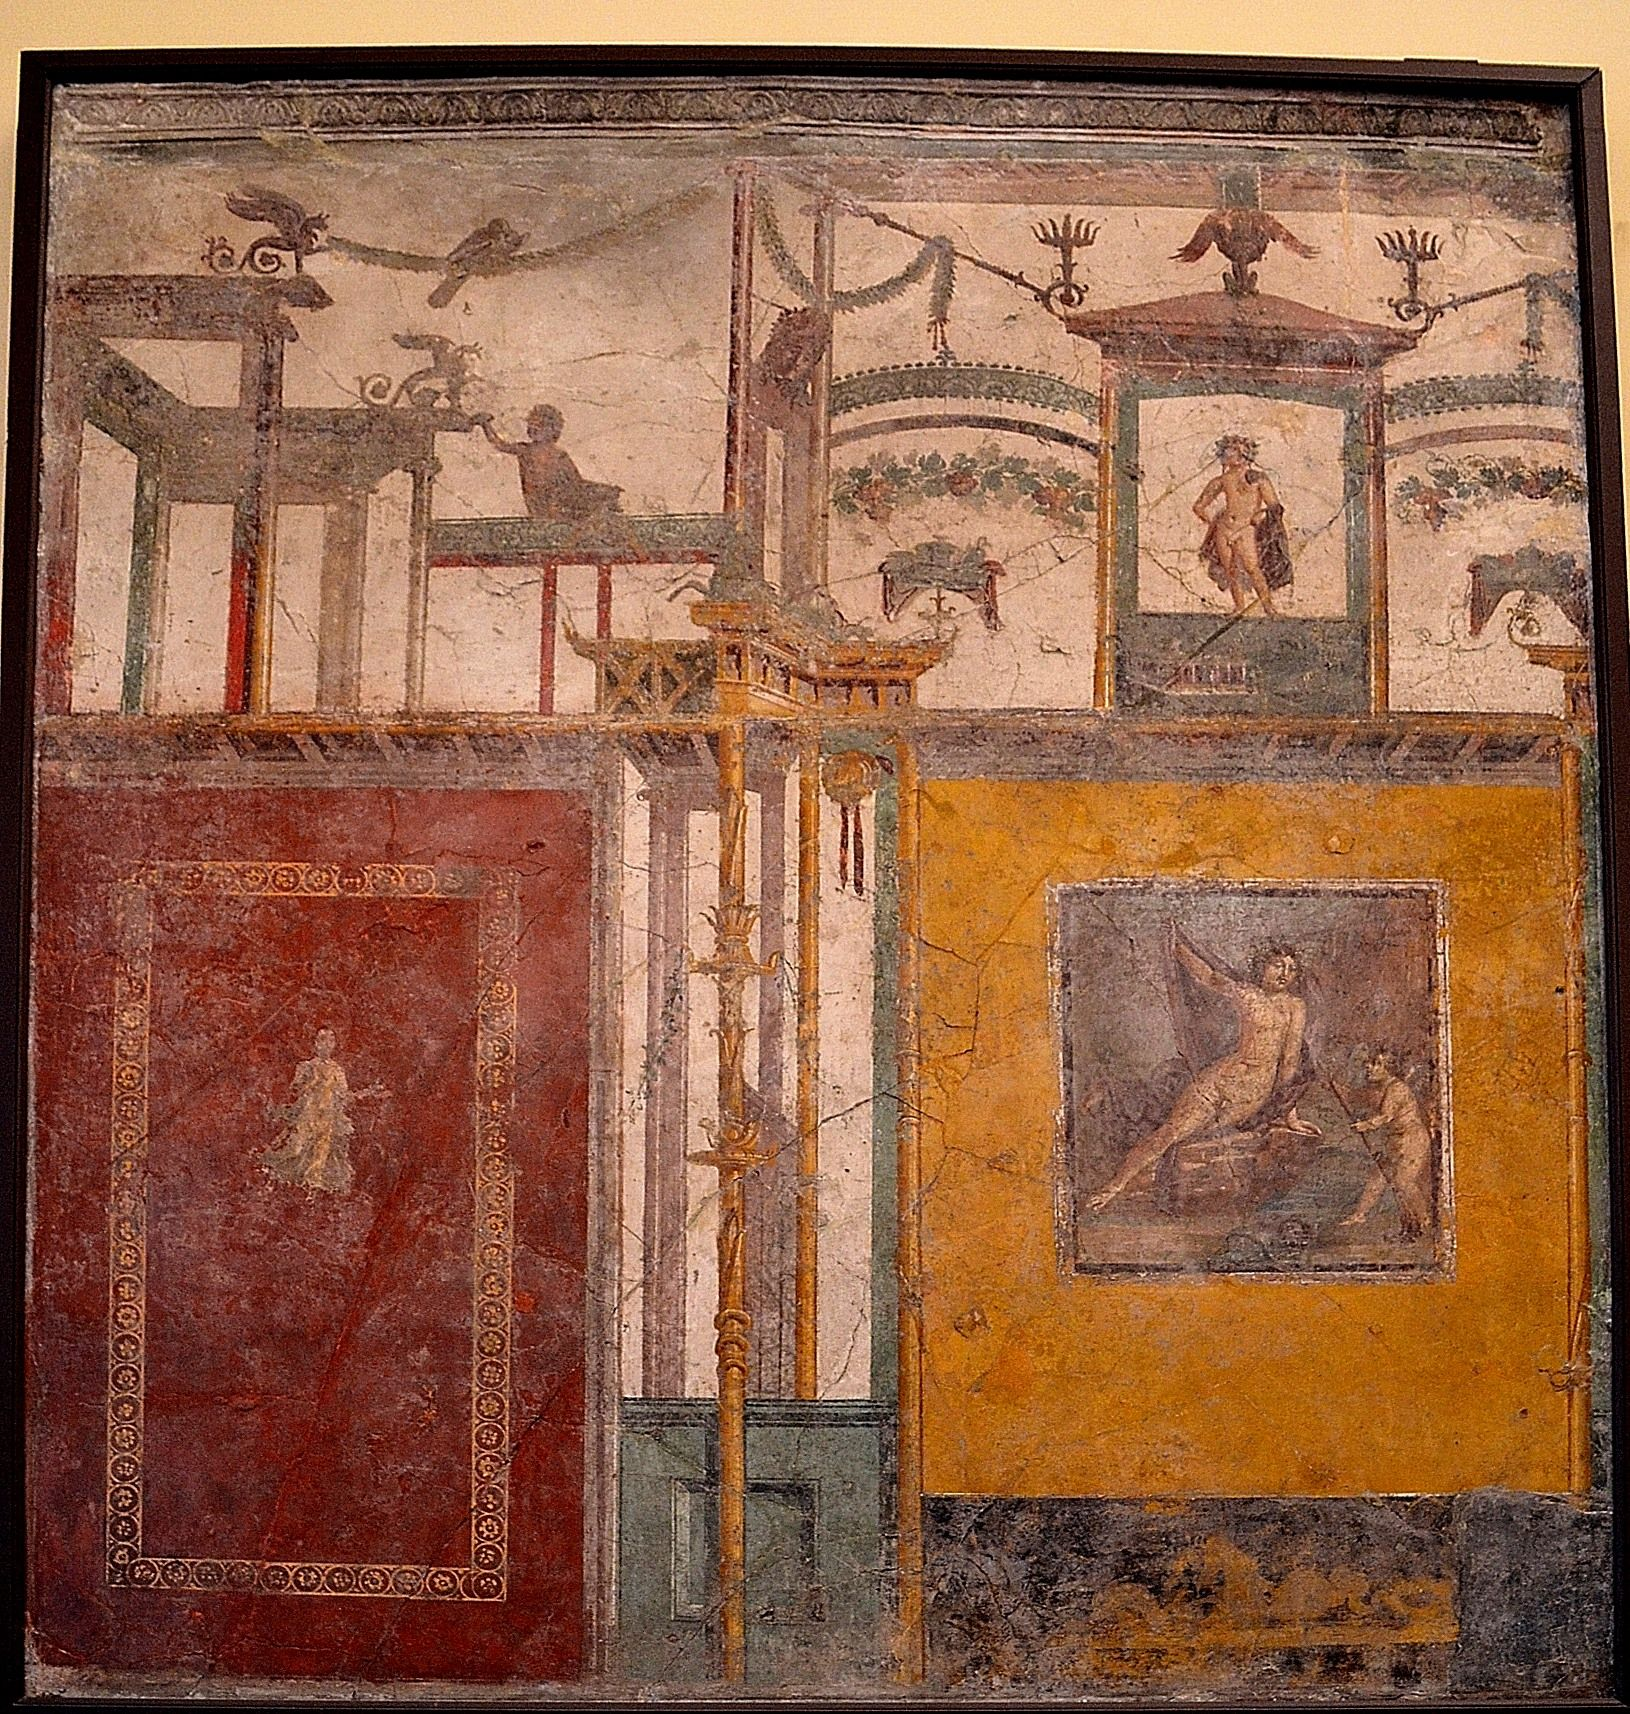 Wall painting styles - 313 Roman Architecture Fourth Style Wall Painting C 20 Ad To C